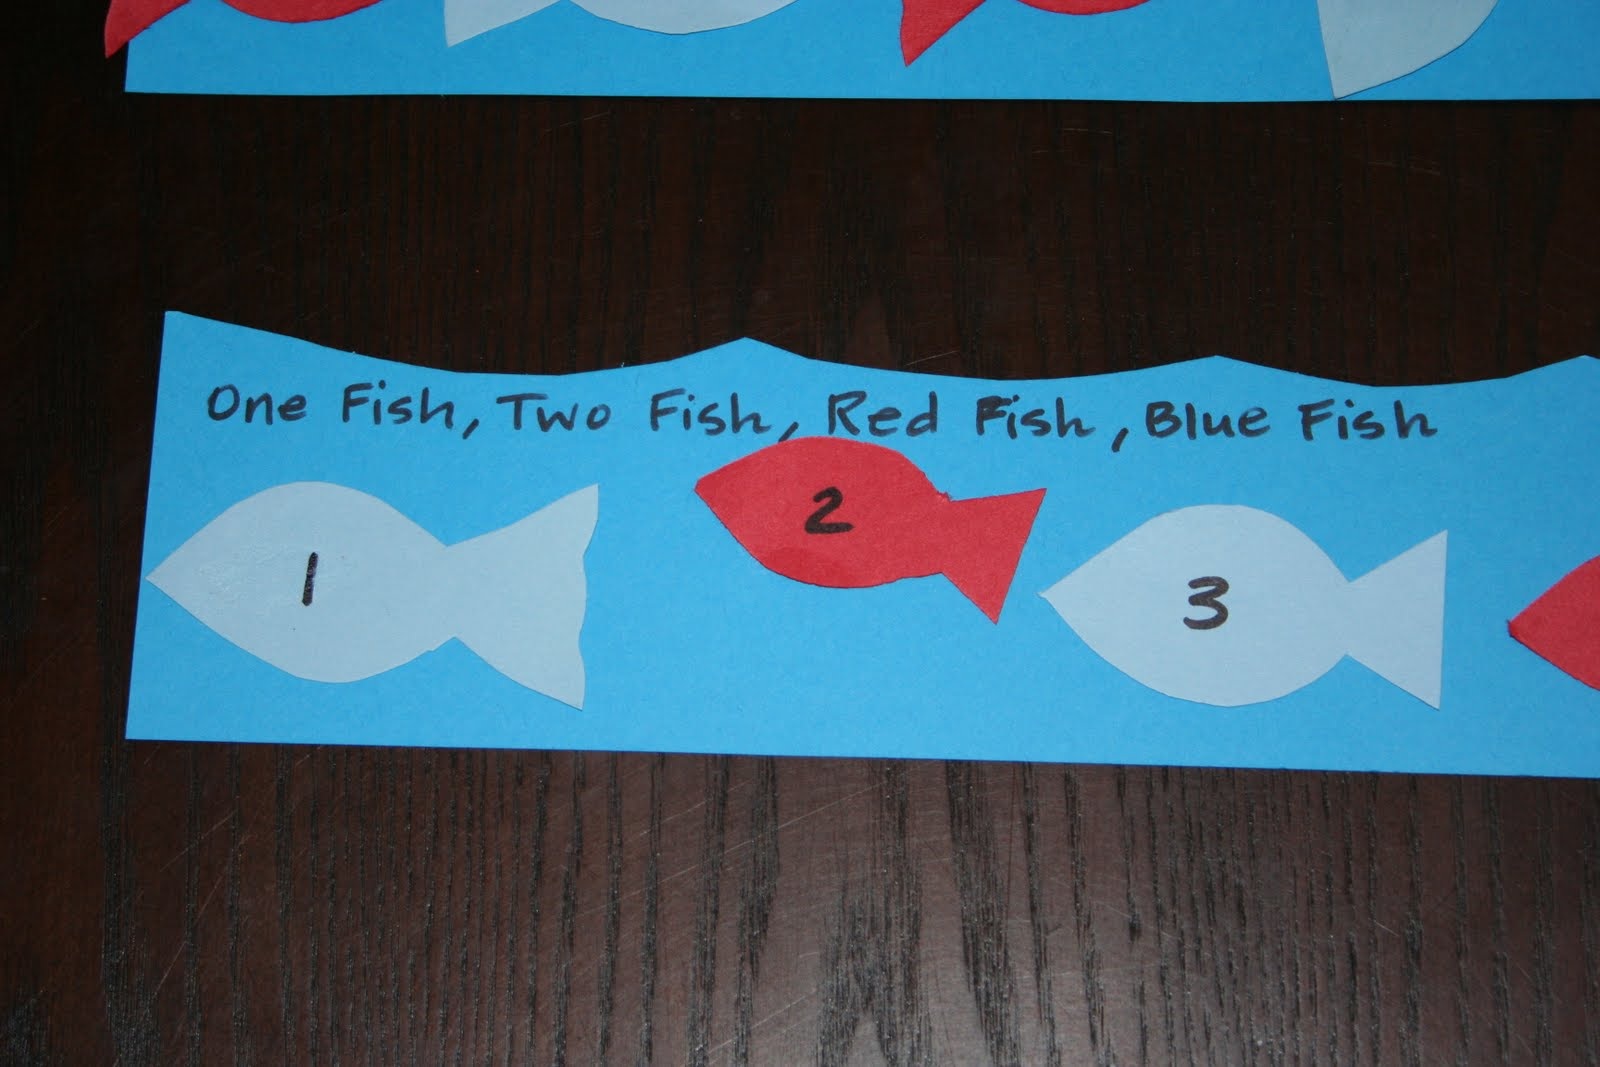 Meadowlarkschool one fish two fish red fish blue fish for One fish two fish red fish blue fish costume